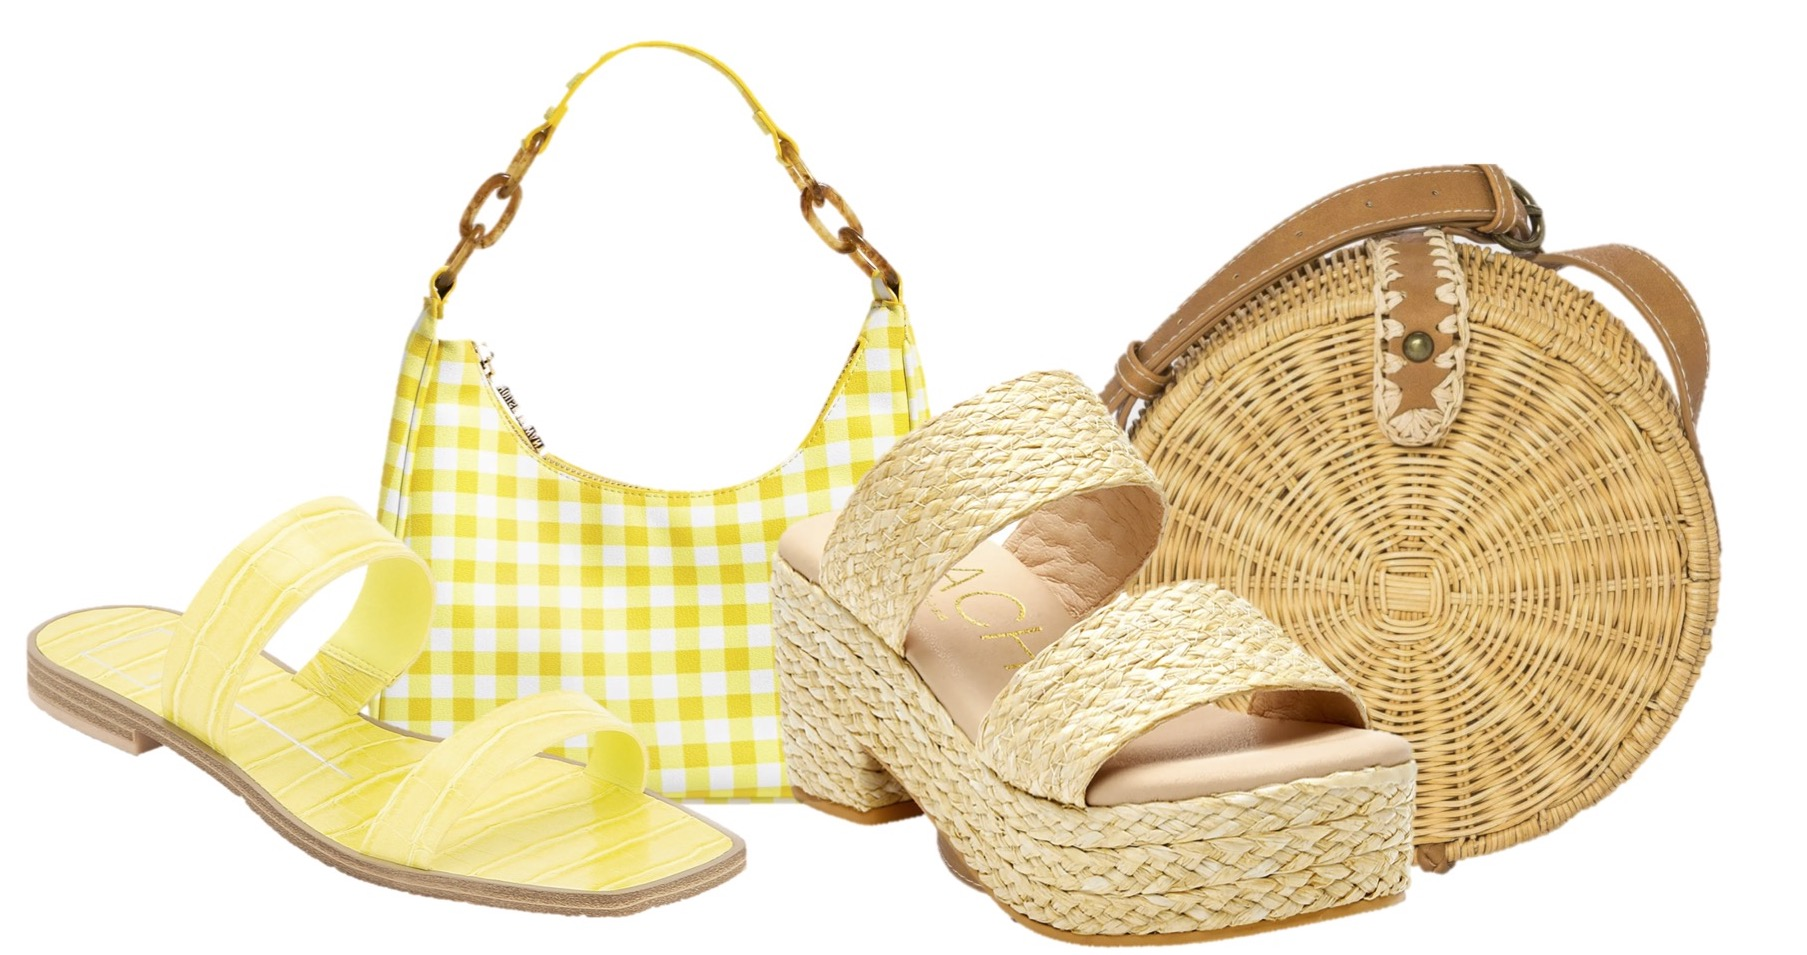 Bolsos, zapatos, dolce vita, house of want, coconuts, target, universal thread